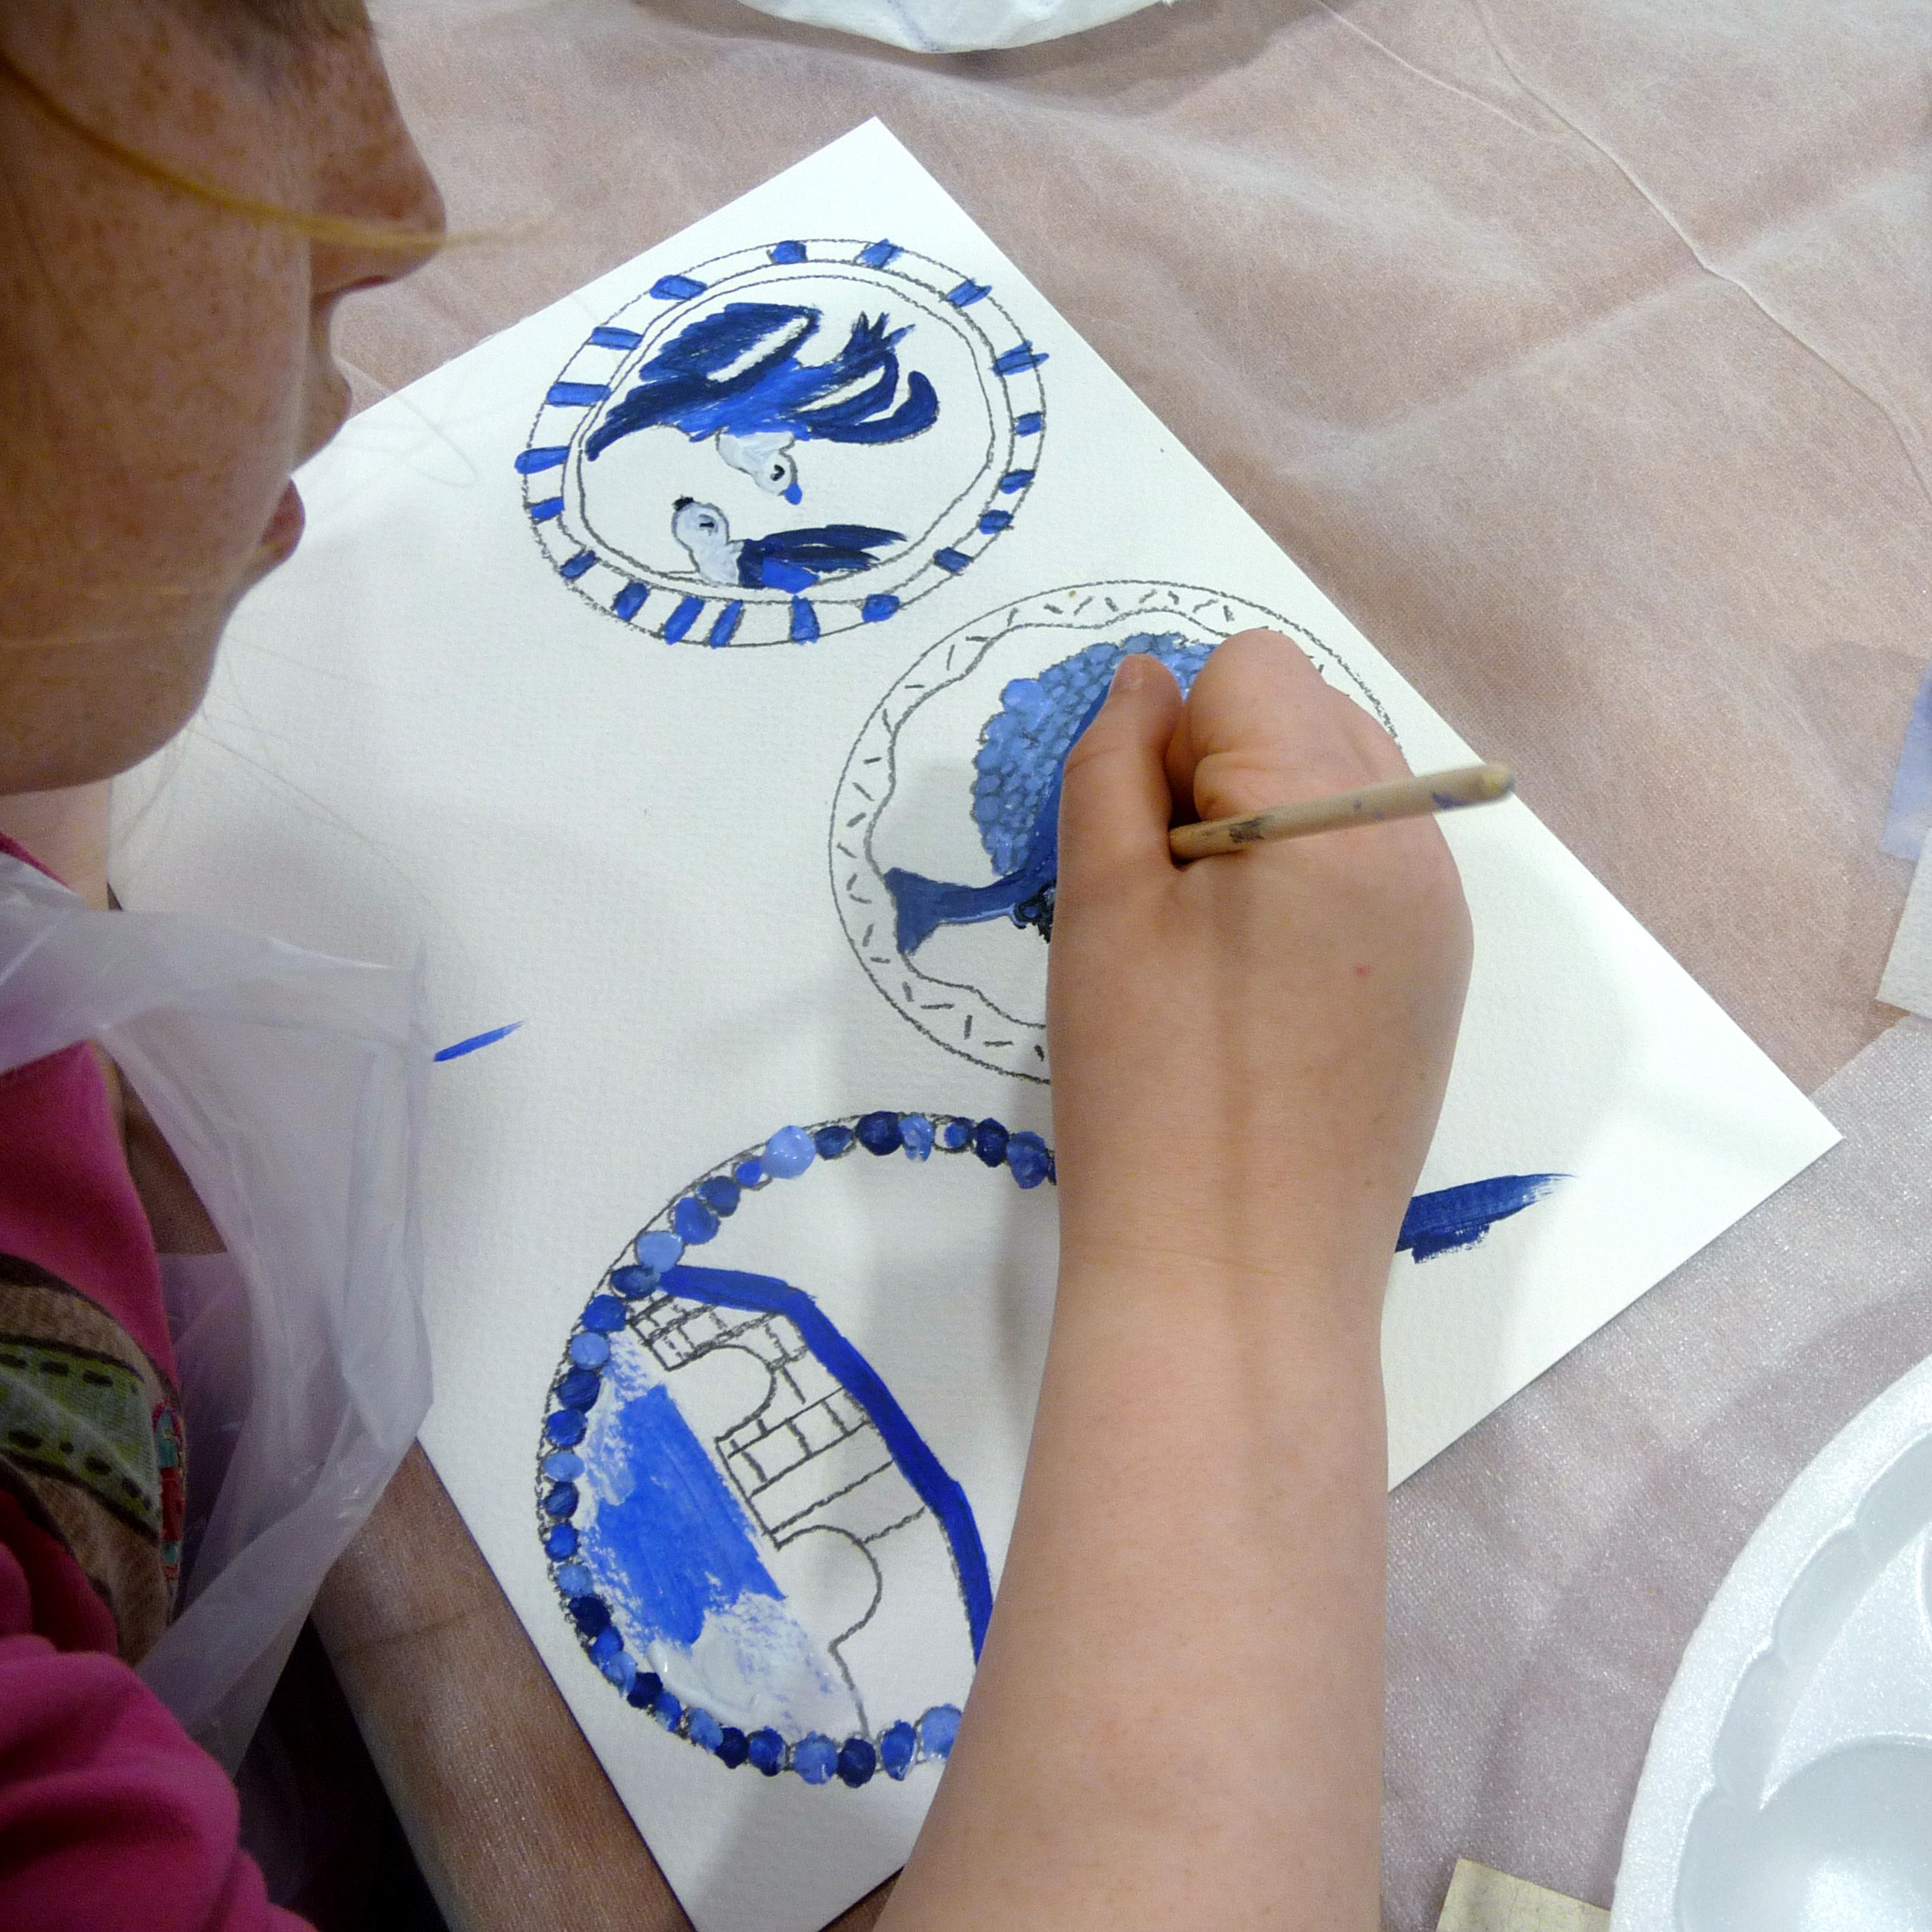 YE painted plates based on the willow pattern design